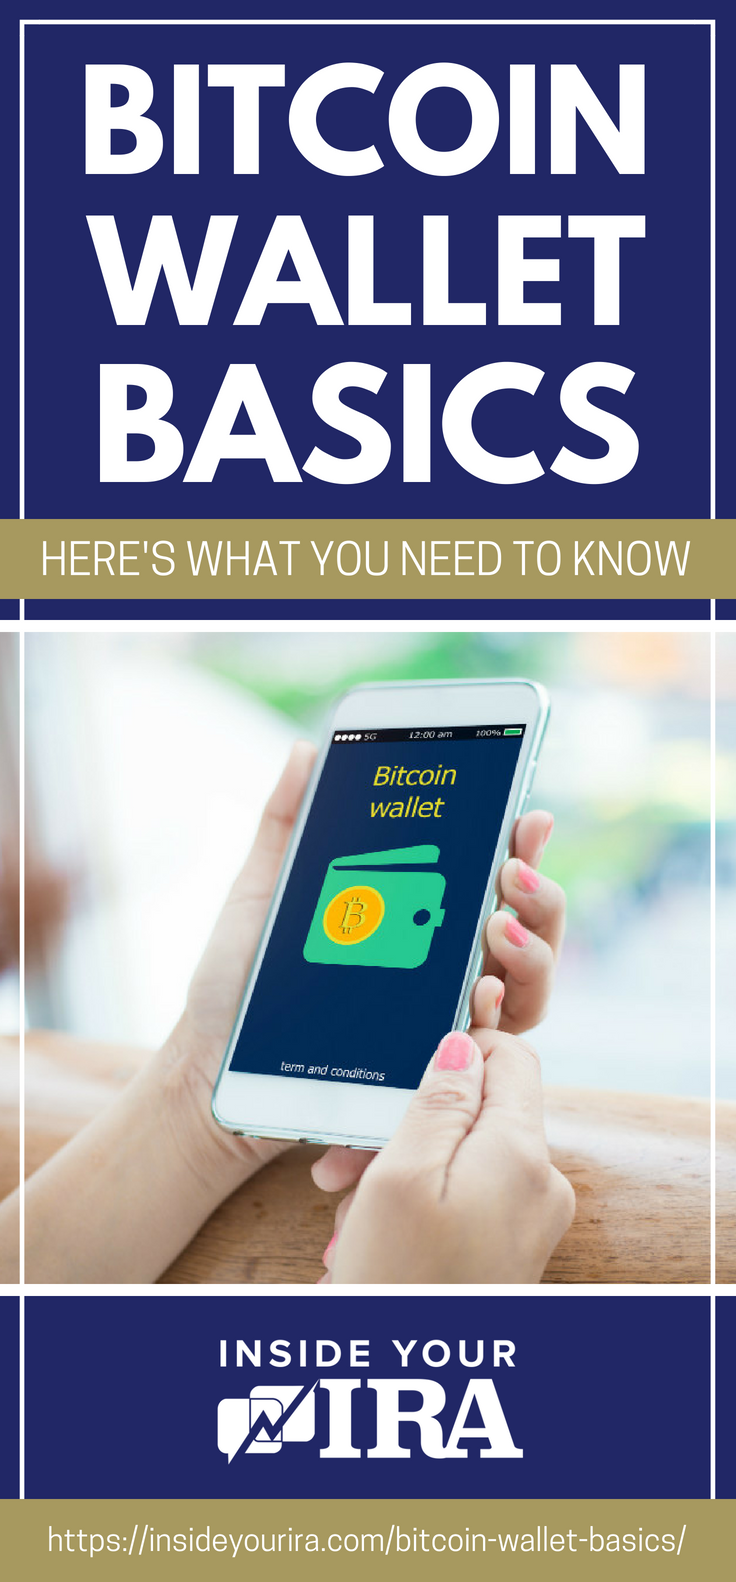 Bitcoin Wallet Basics: Here's What You Need To Know Send & Receive Safely   Inside Your IRA https://insideyourira.com/bitcoin-wallet-basics/